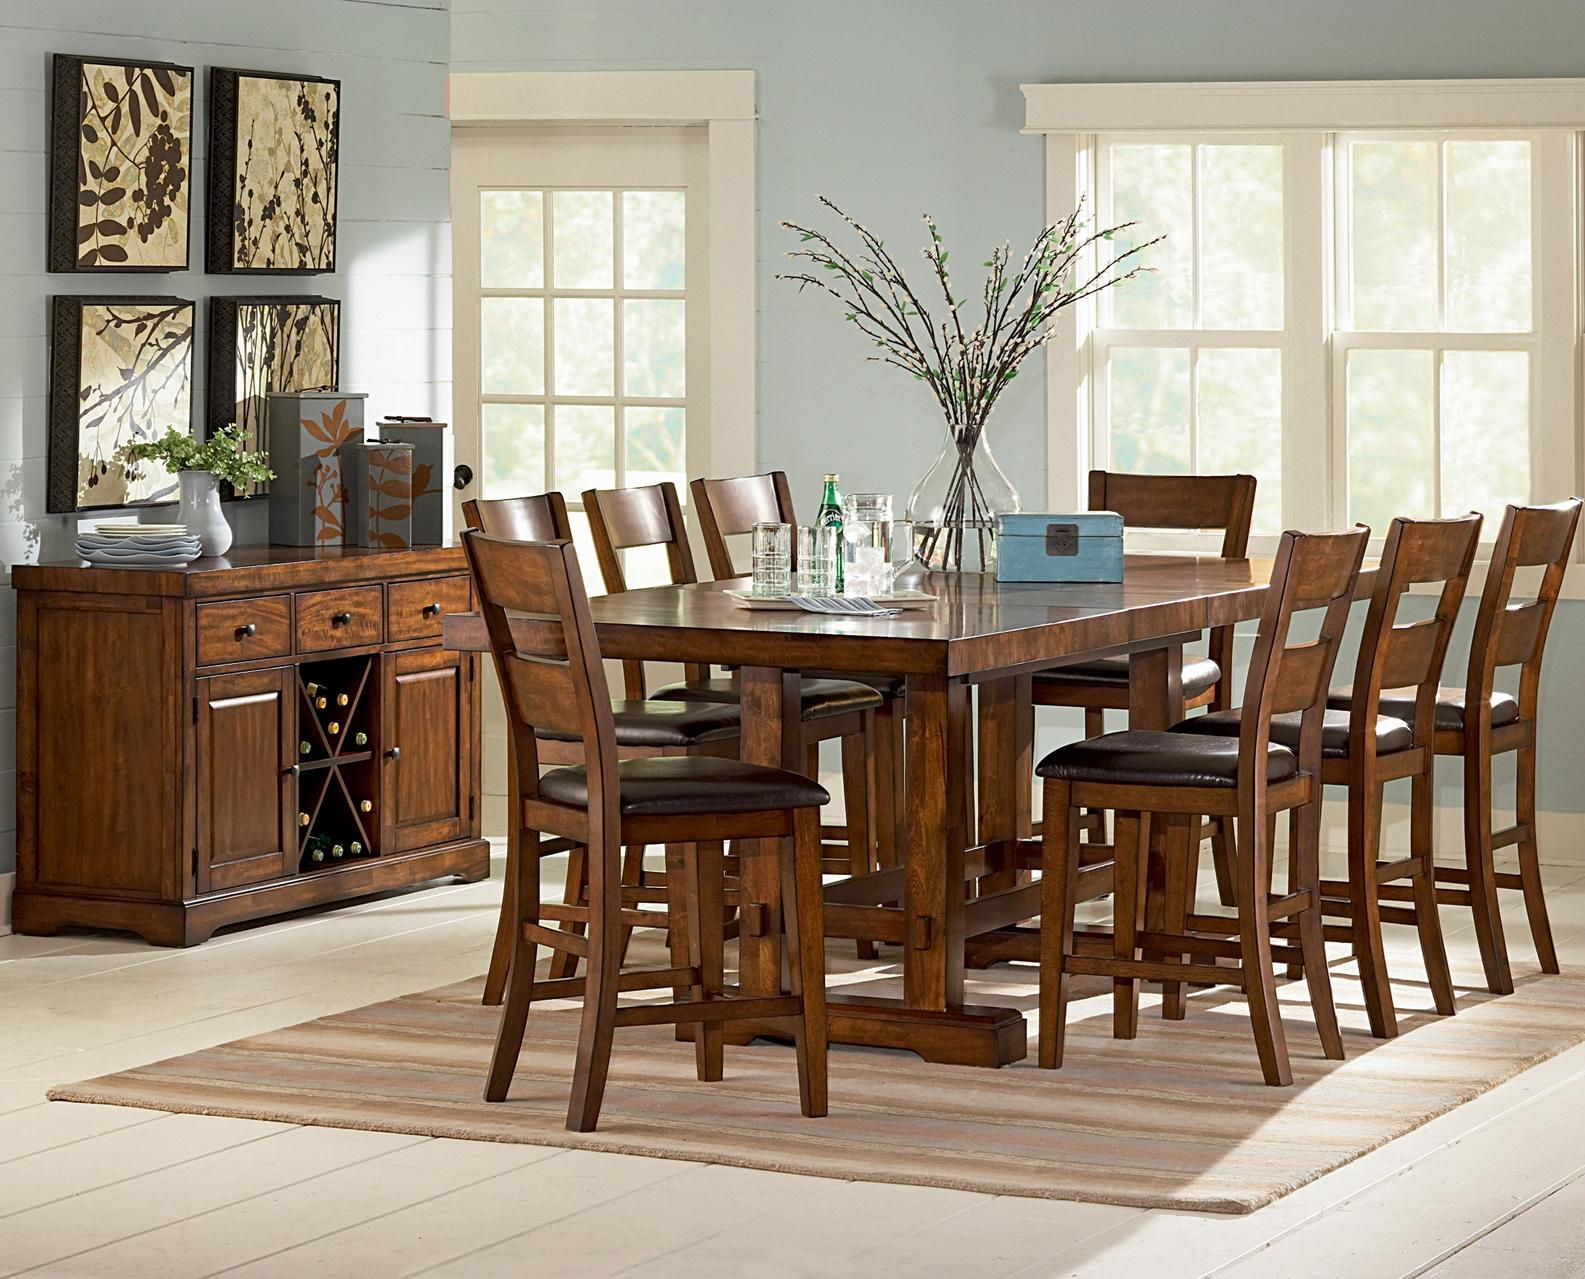 Zappa Formal Dining Room Group by Steve Silver at Northeast Factory Direct